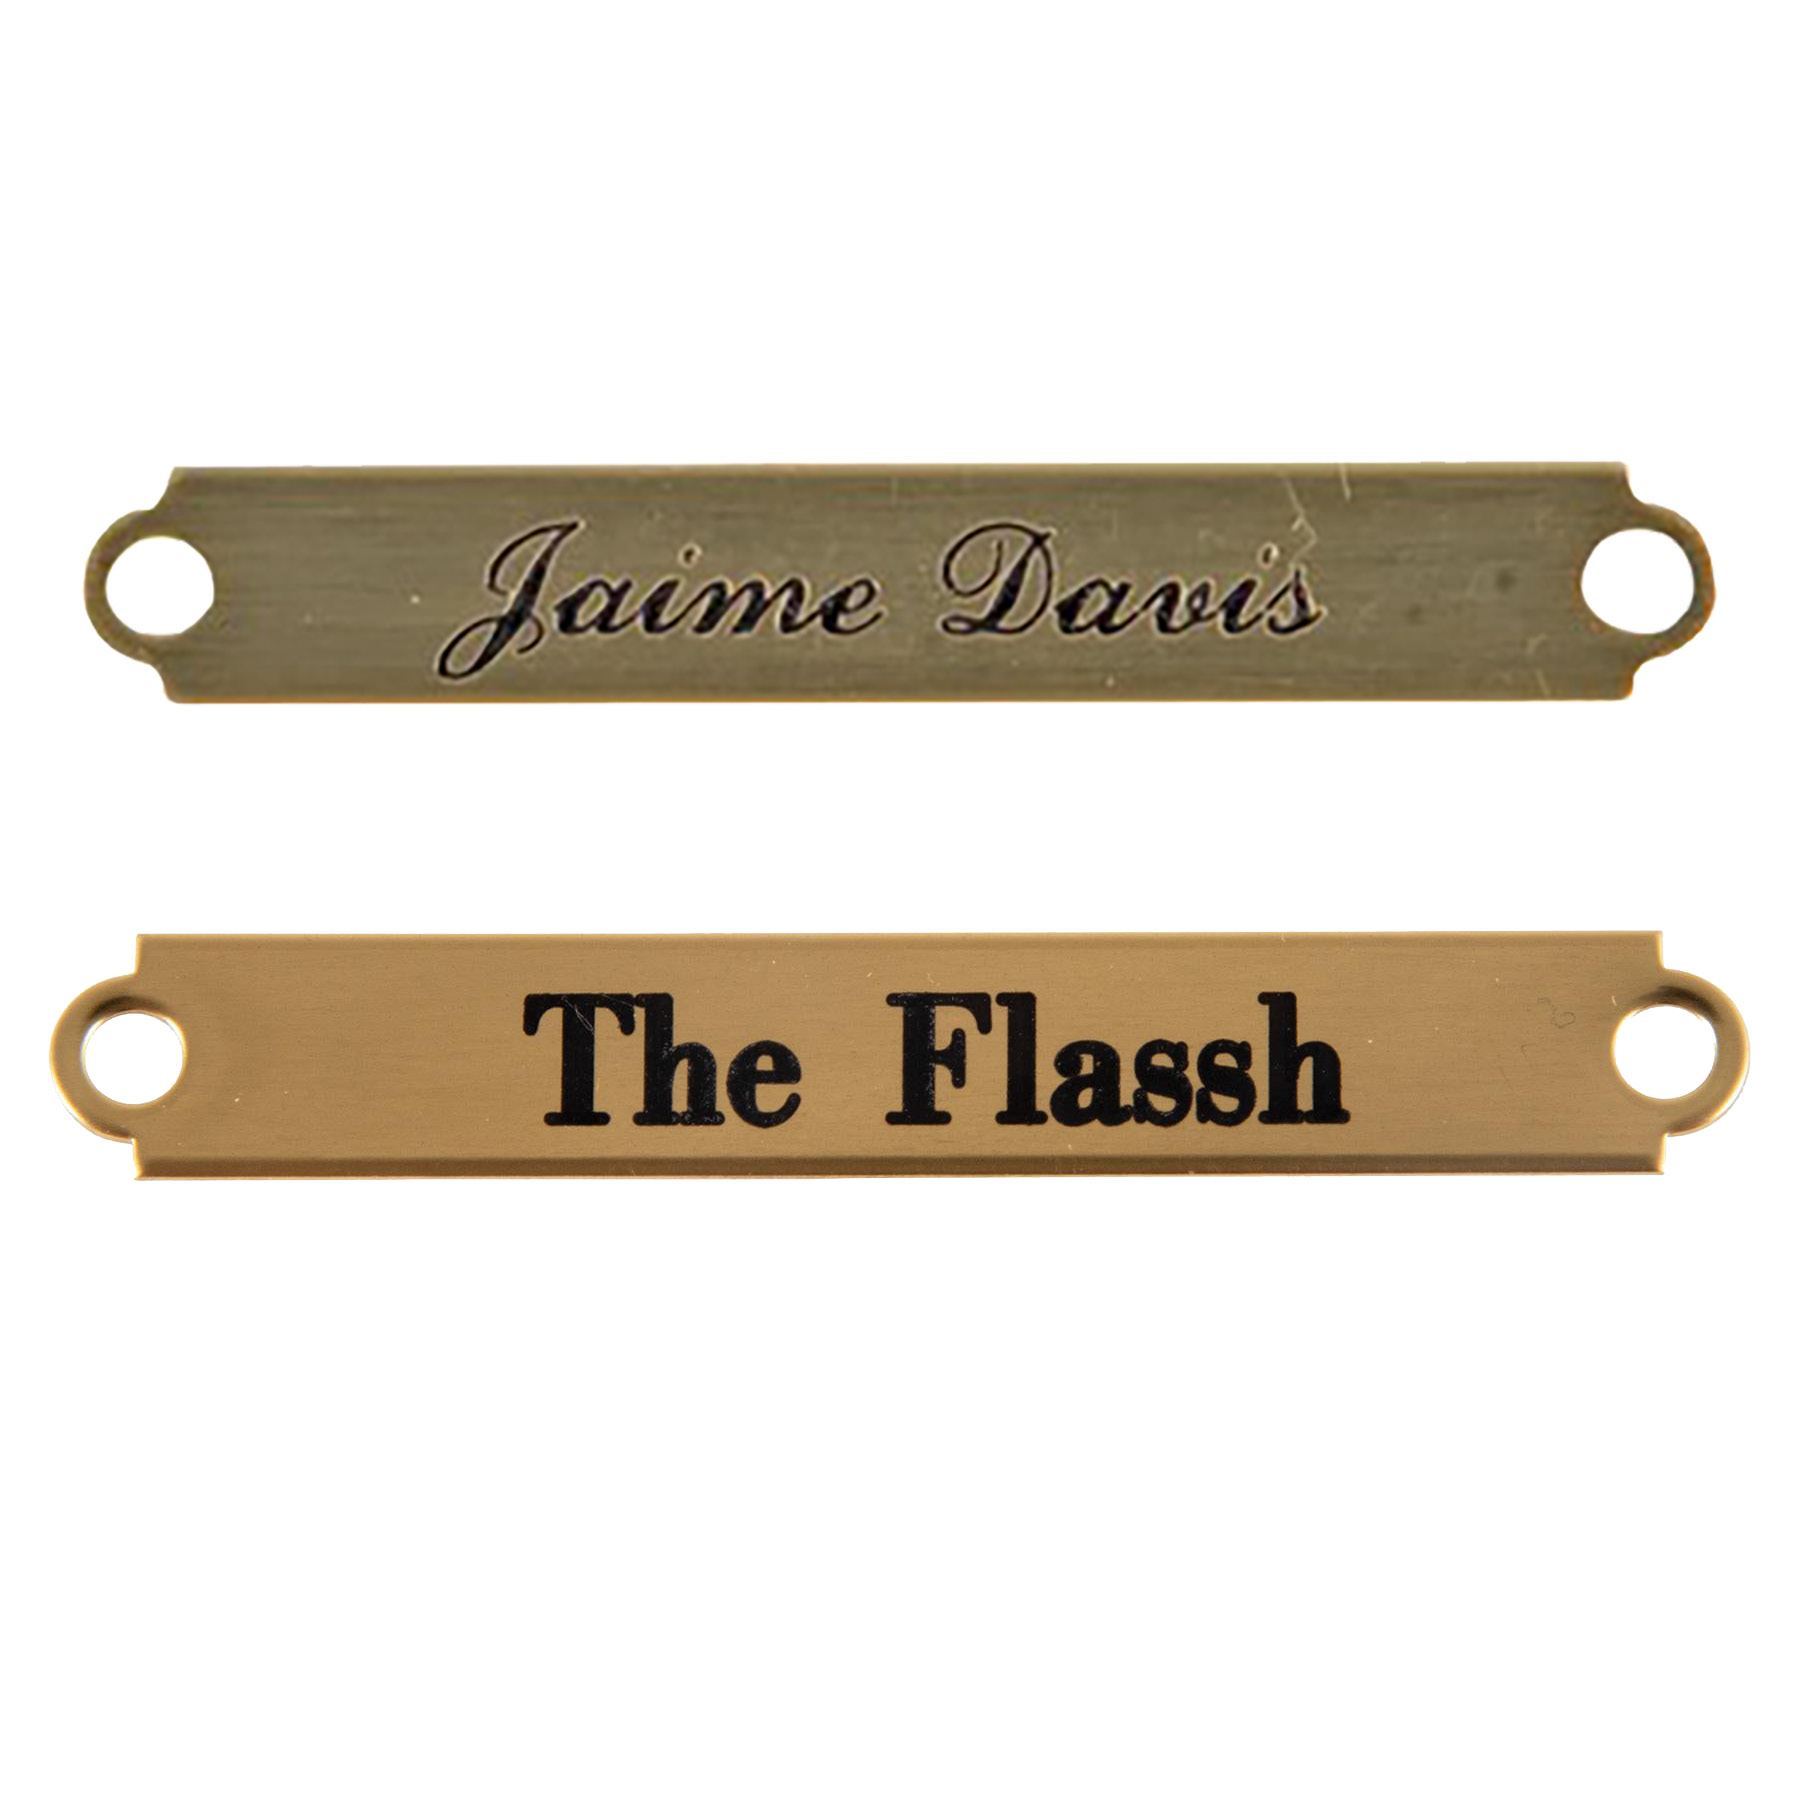 Notched Bridle Name Plate